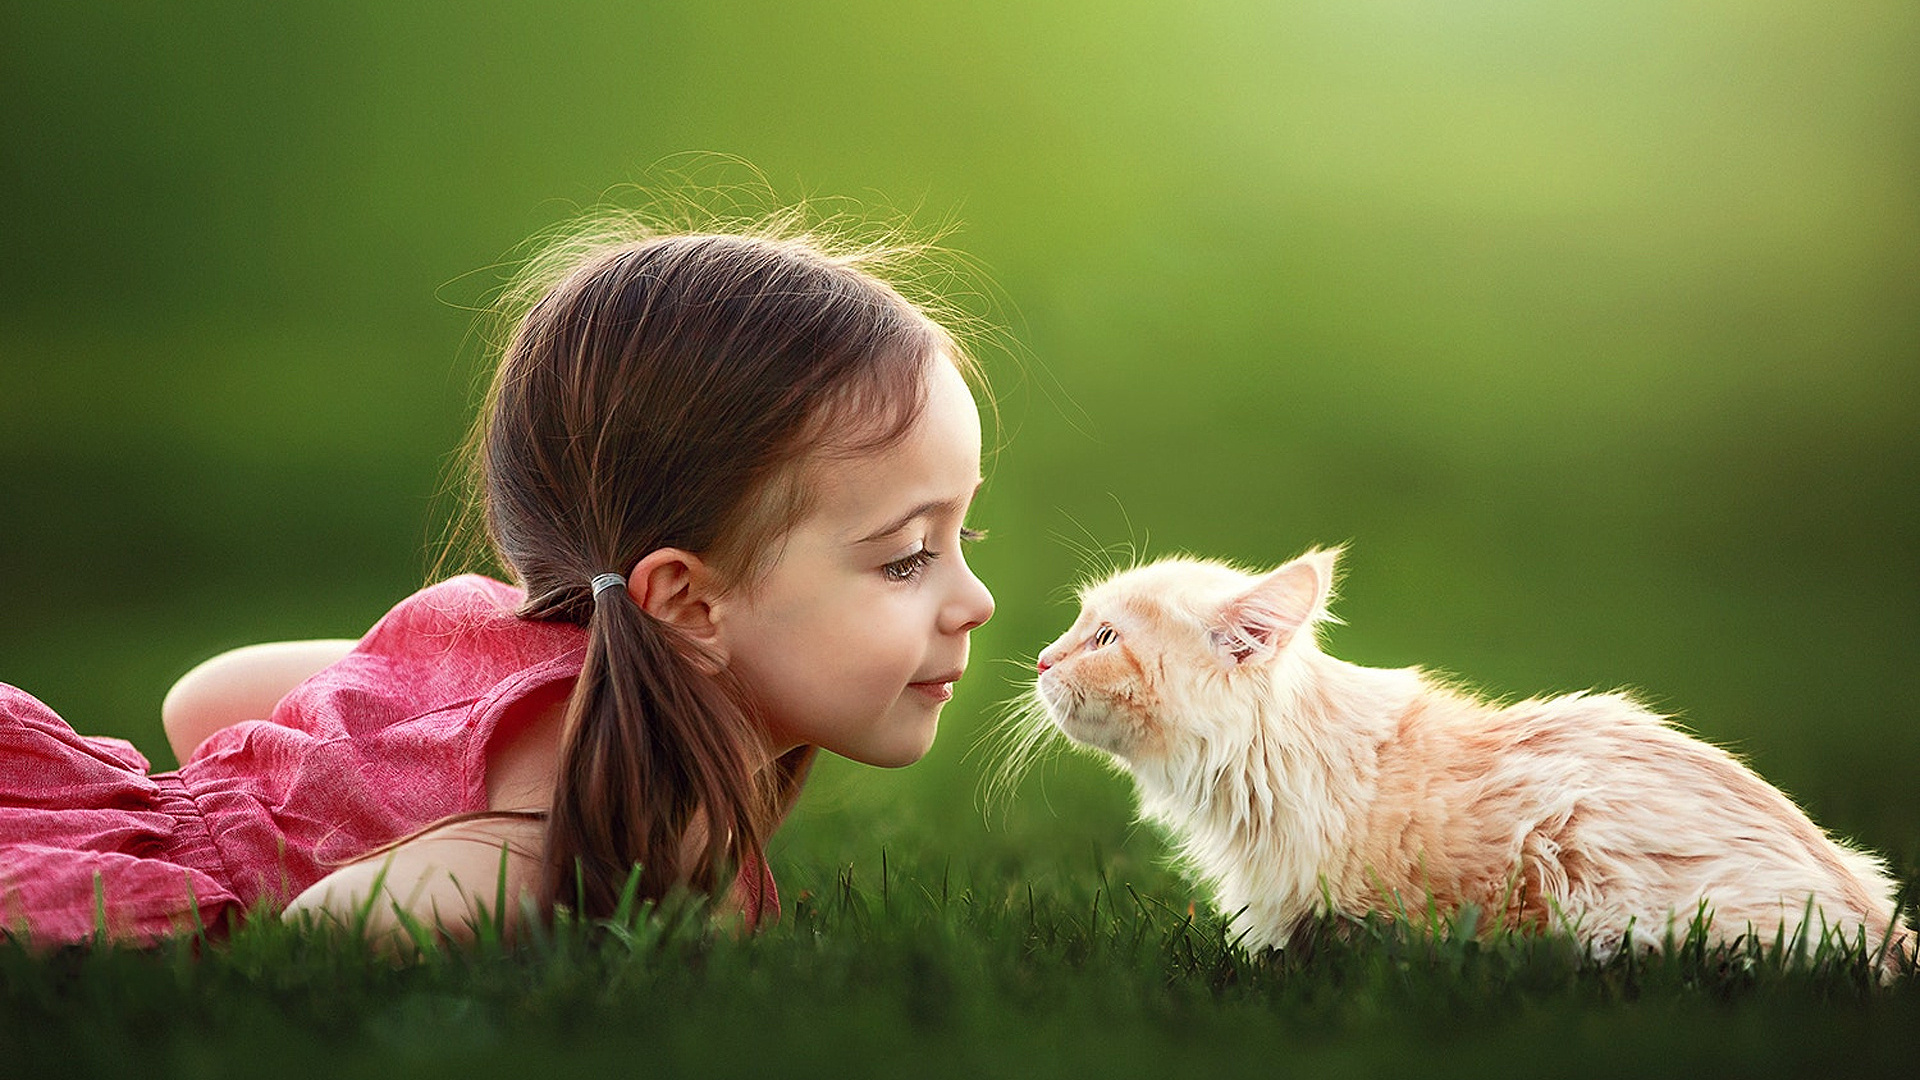 Wallpaper Cat, Baby Girl, Face Off - Cute Girl With Animal , HD Wallpaper & Backgrounds